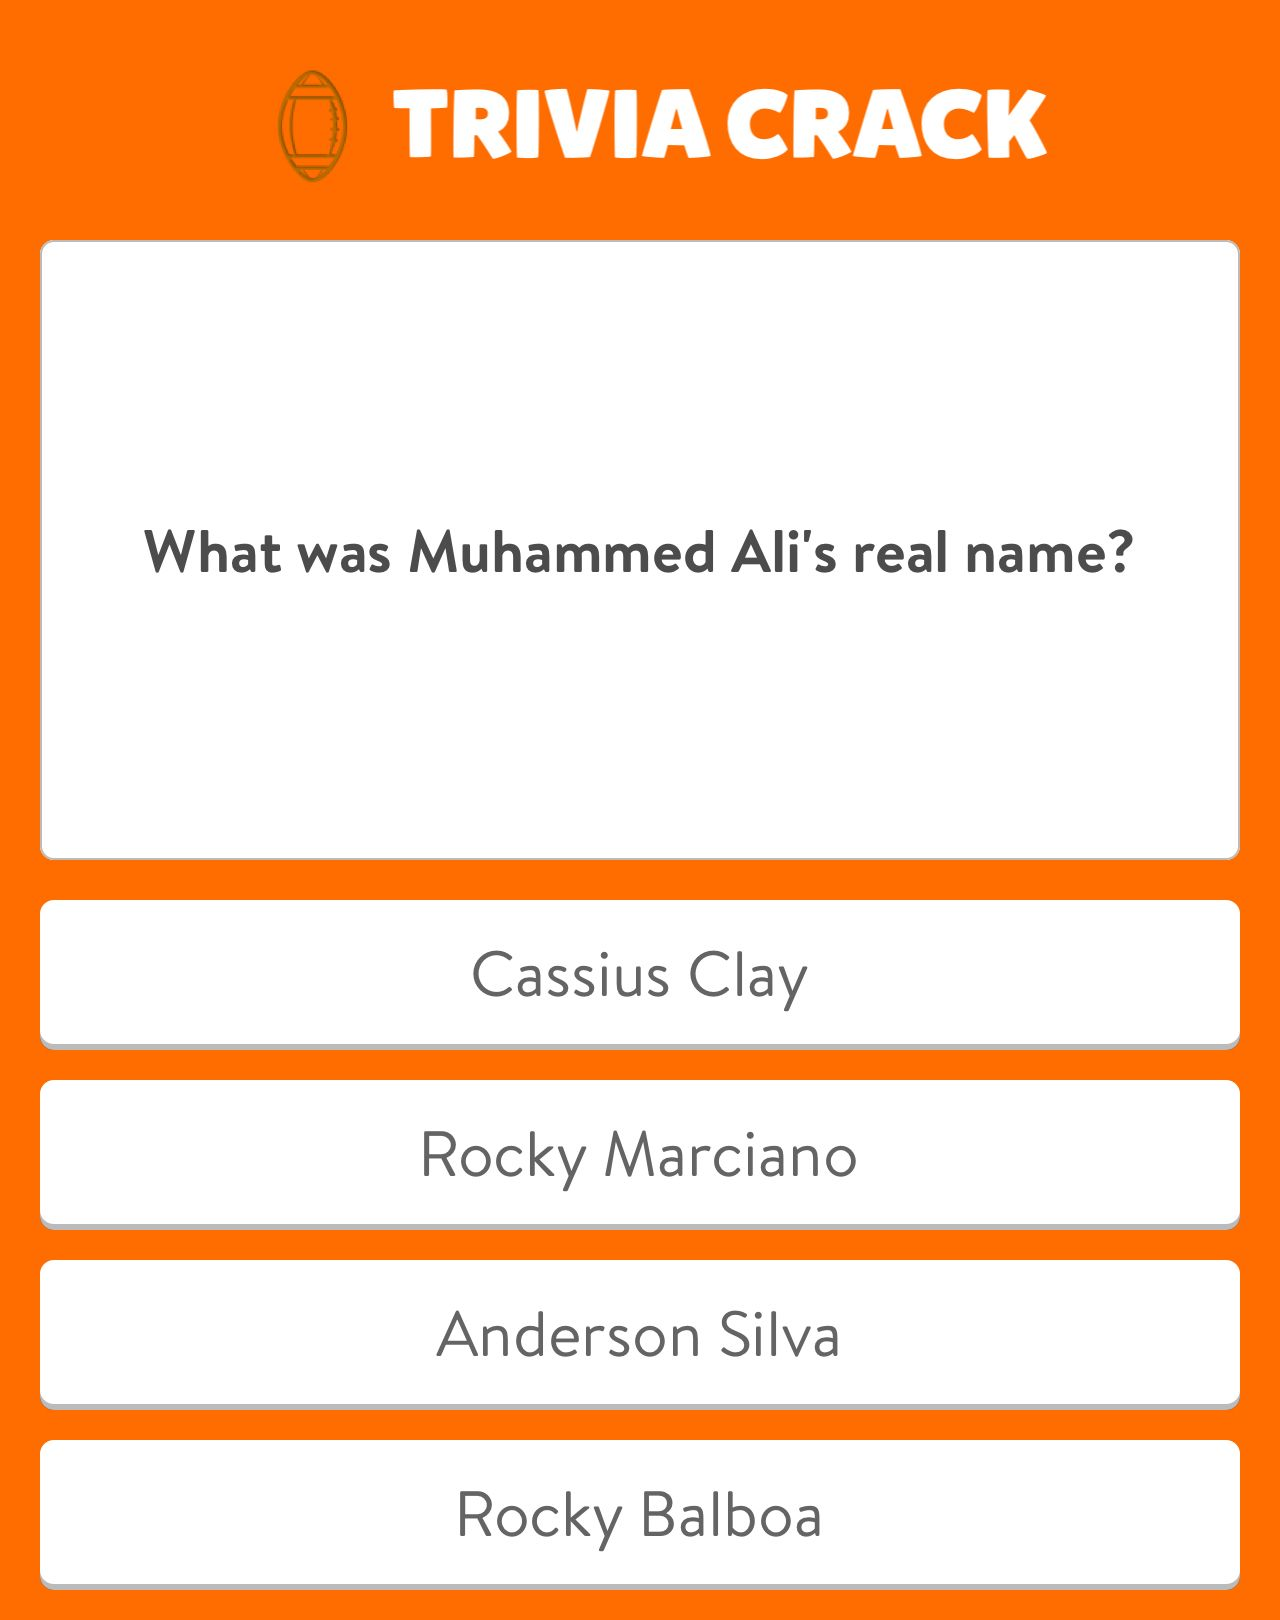 Free prizes trivia crack answers